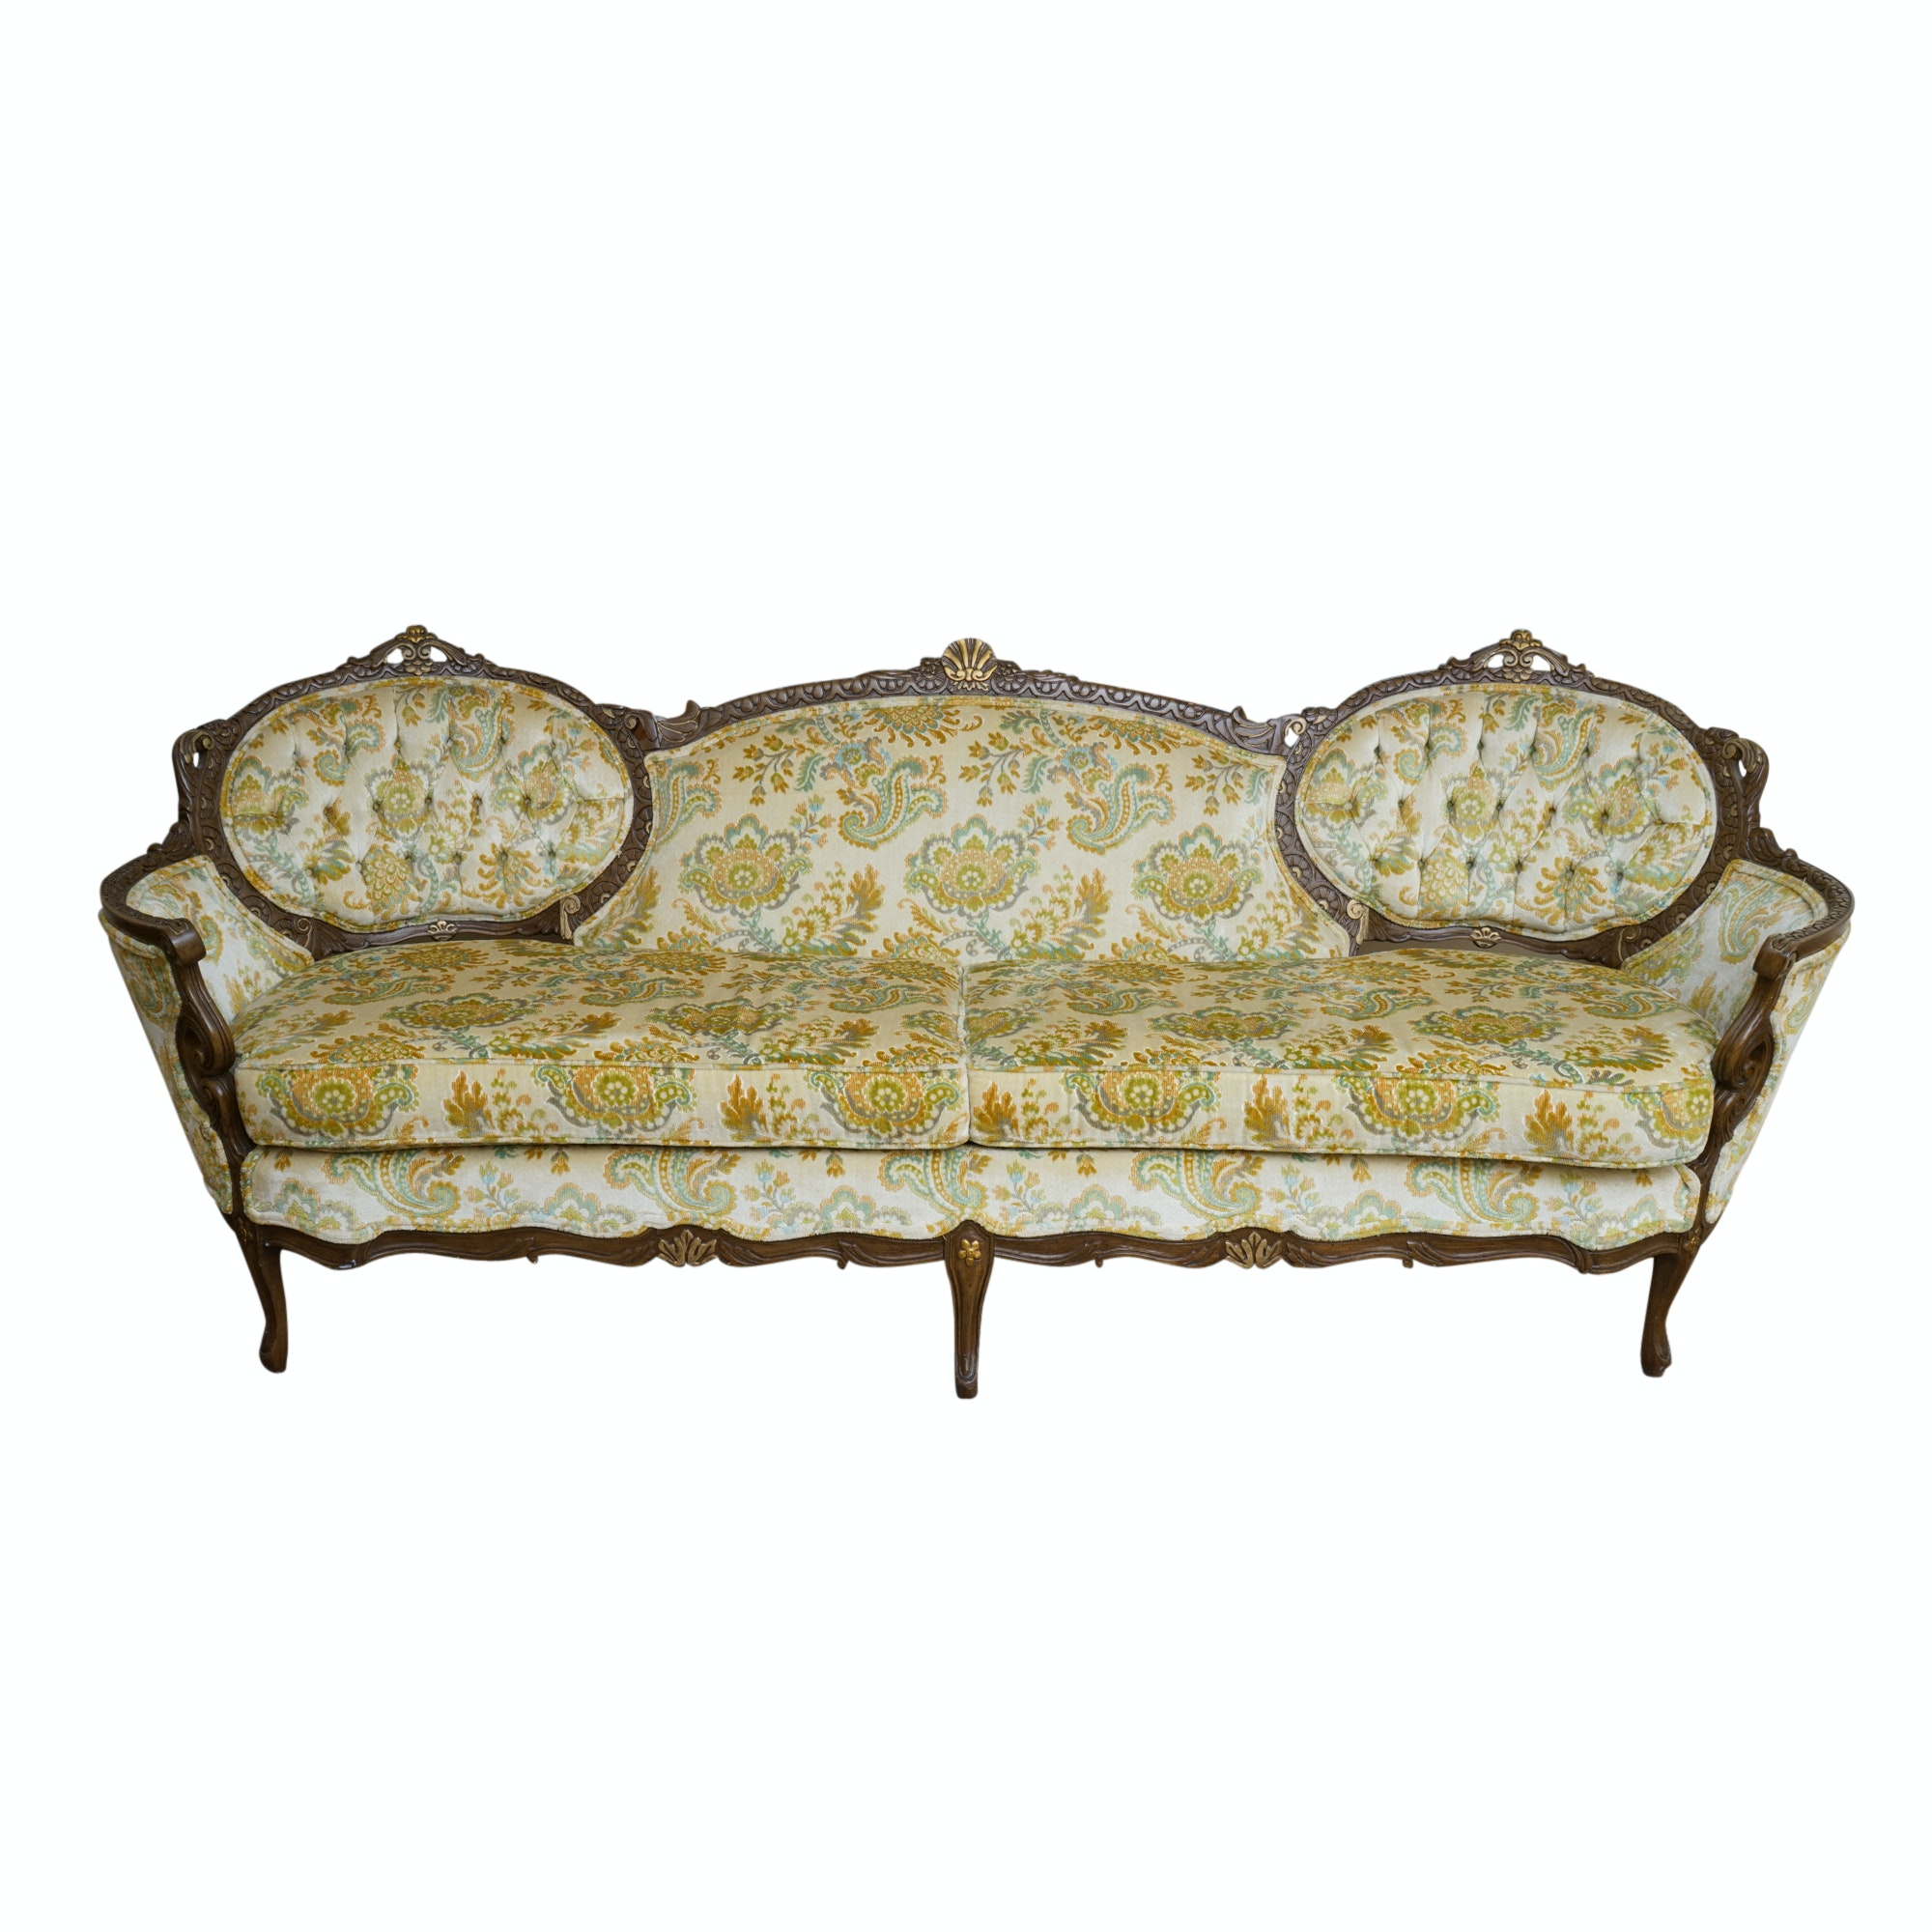 1930s French Style Sofa